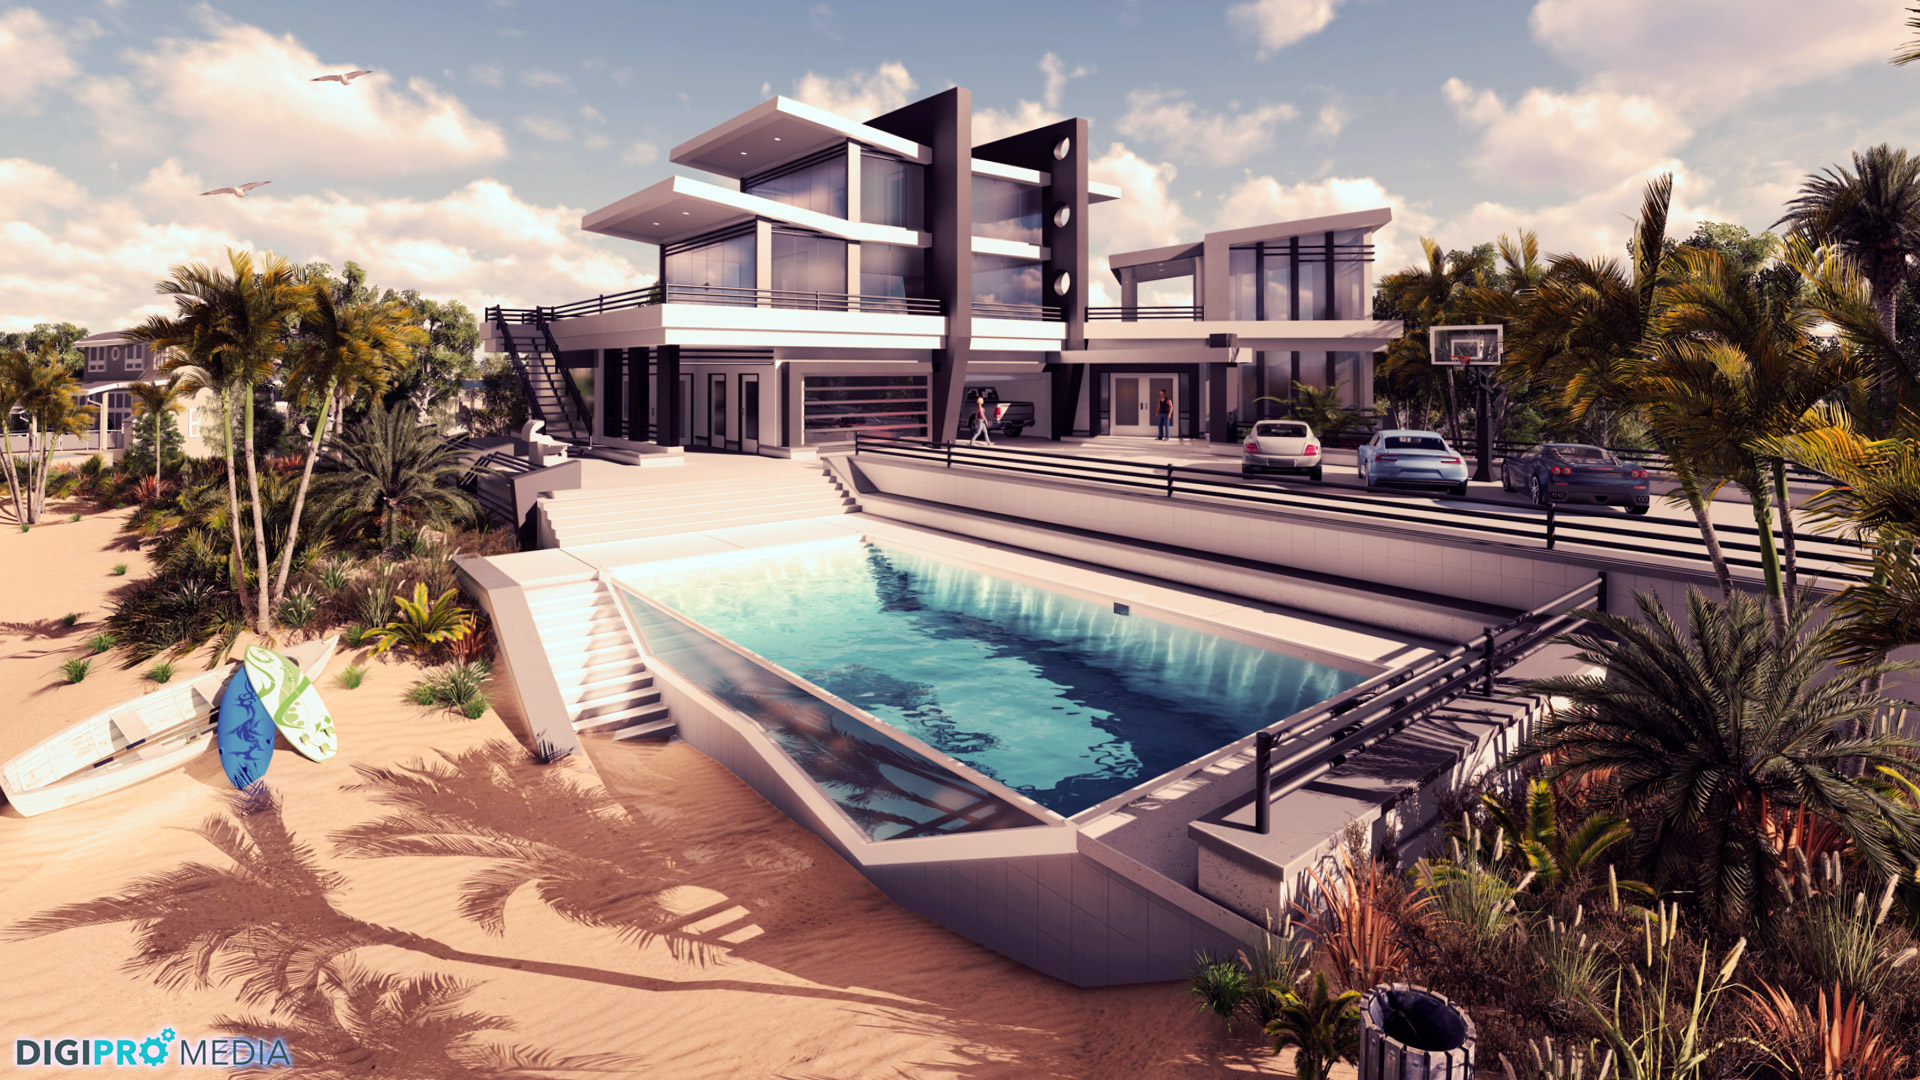 3d rendering of beach house with pool and driveway